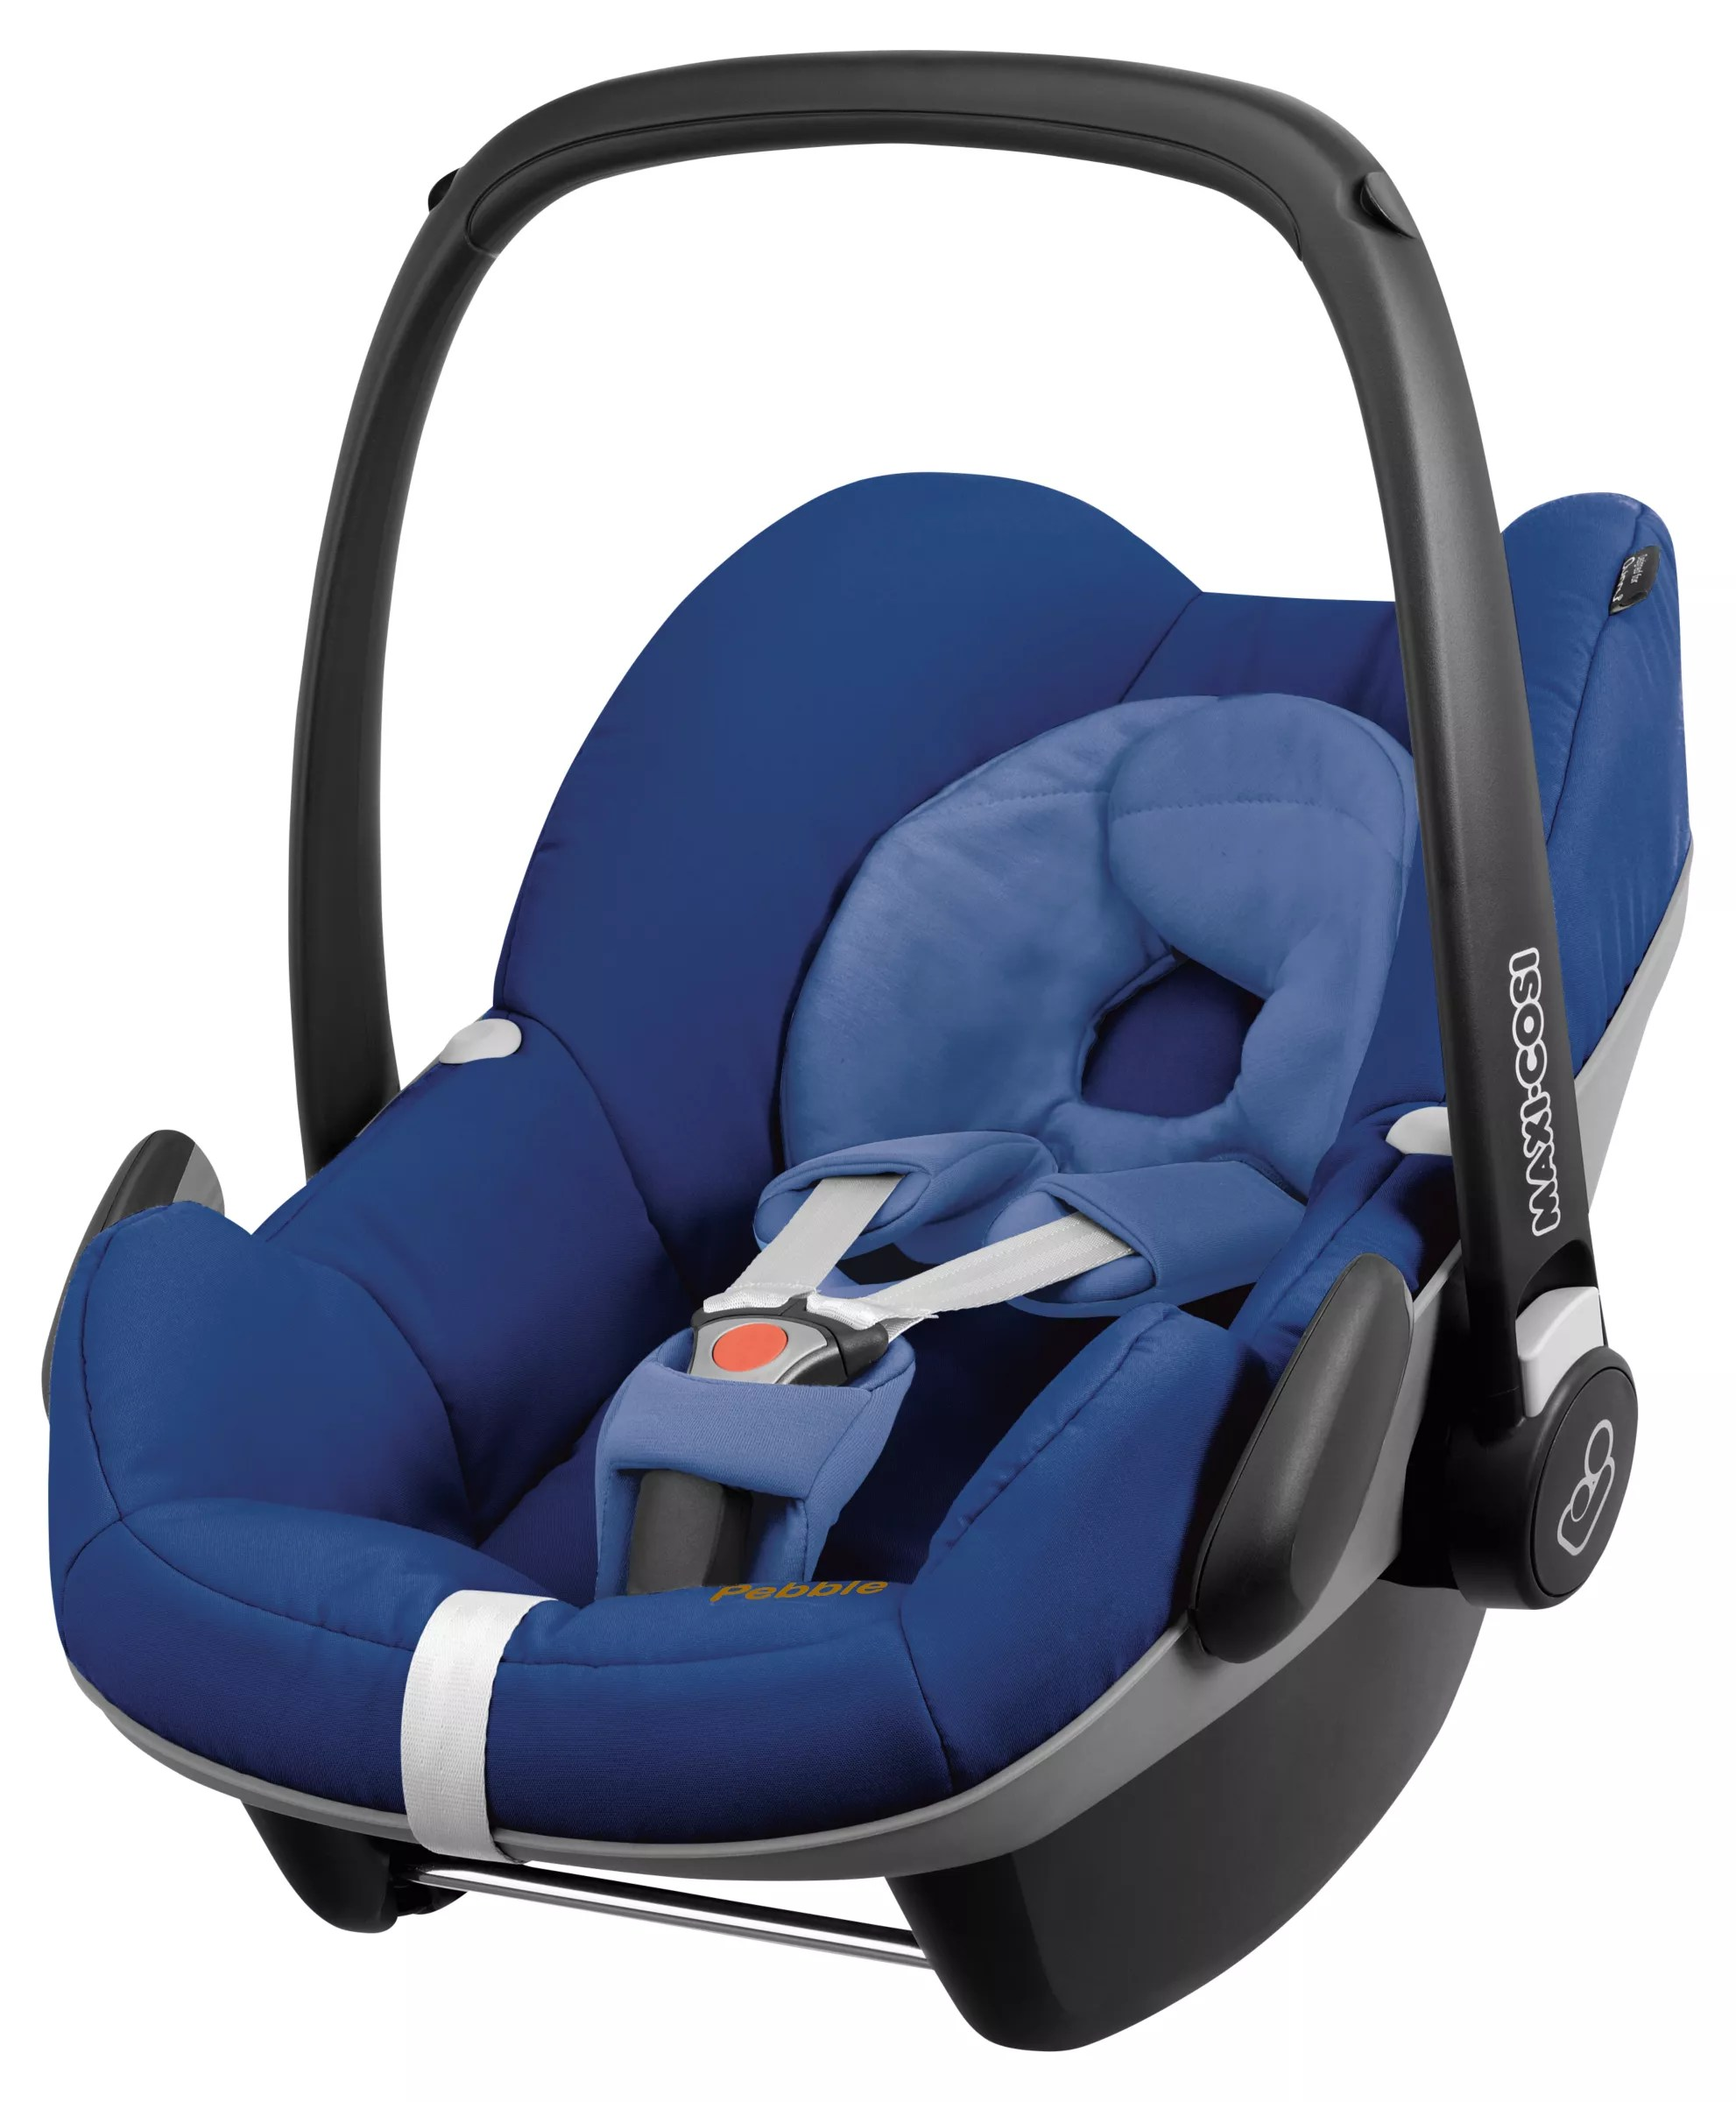 Travel System Isofix Compatible Maxi Cosi Pebble Group Baby Car Seat Blue Base At John